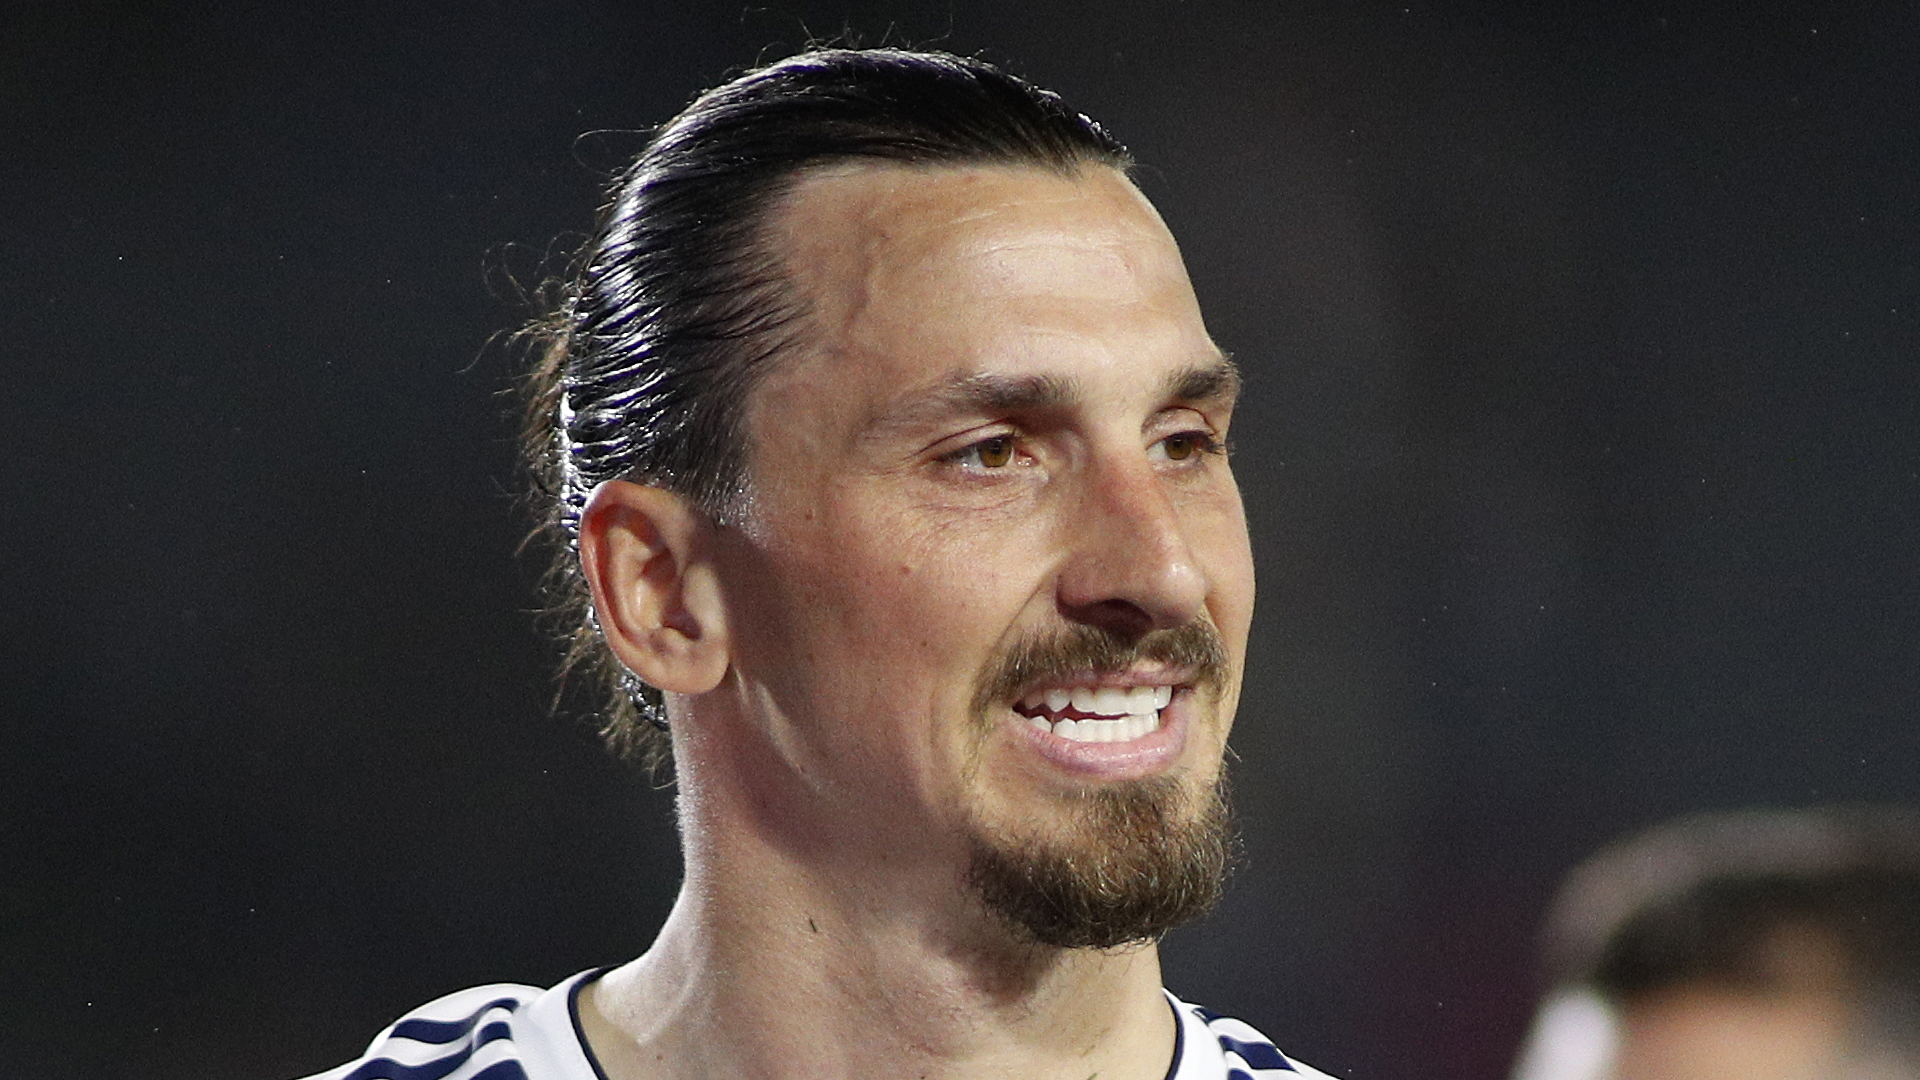 Ibrahimovic open to Bologna move, says Serie A side's sporting director